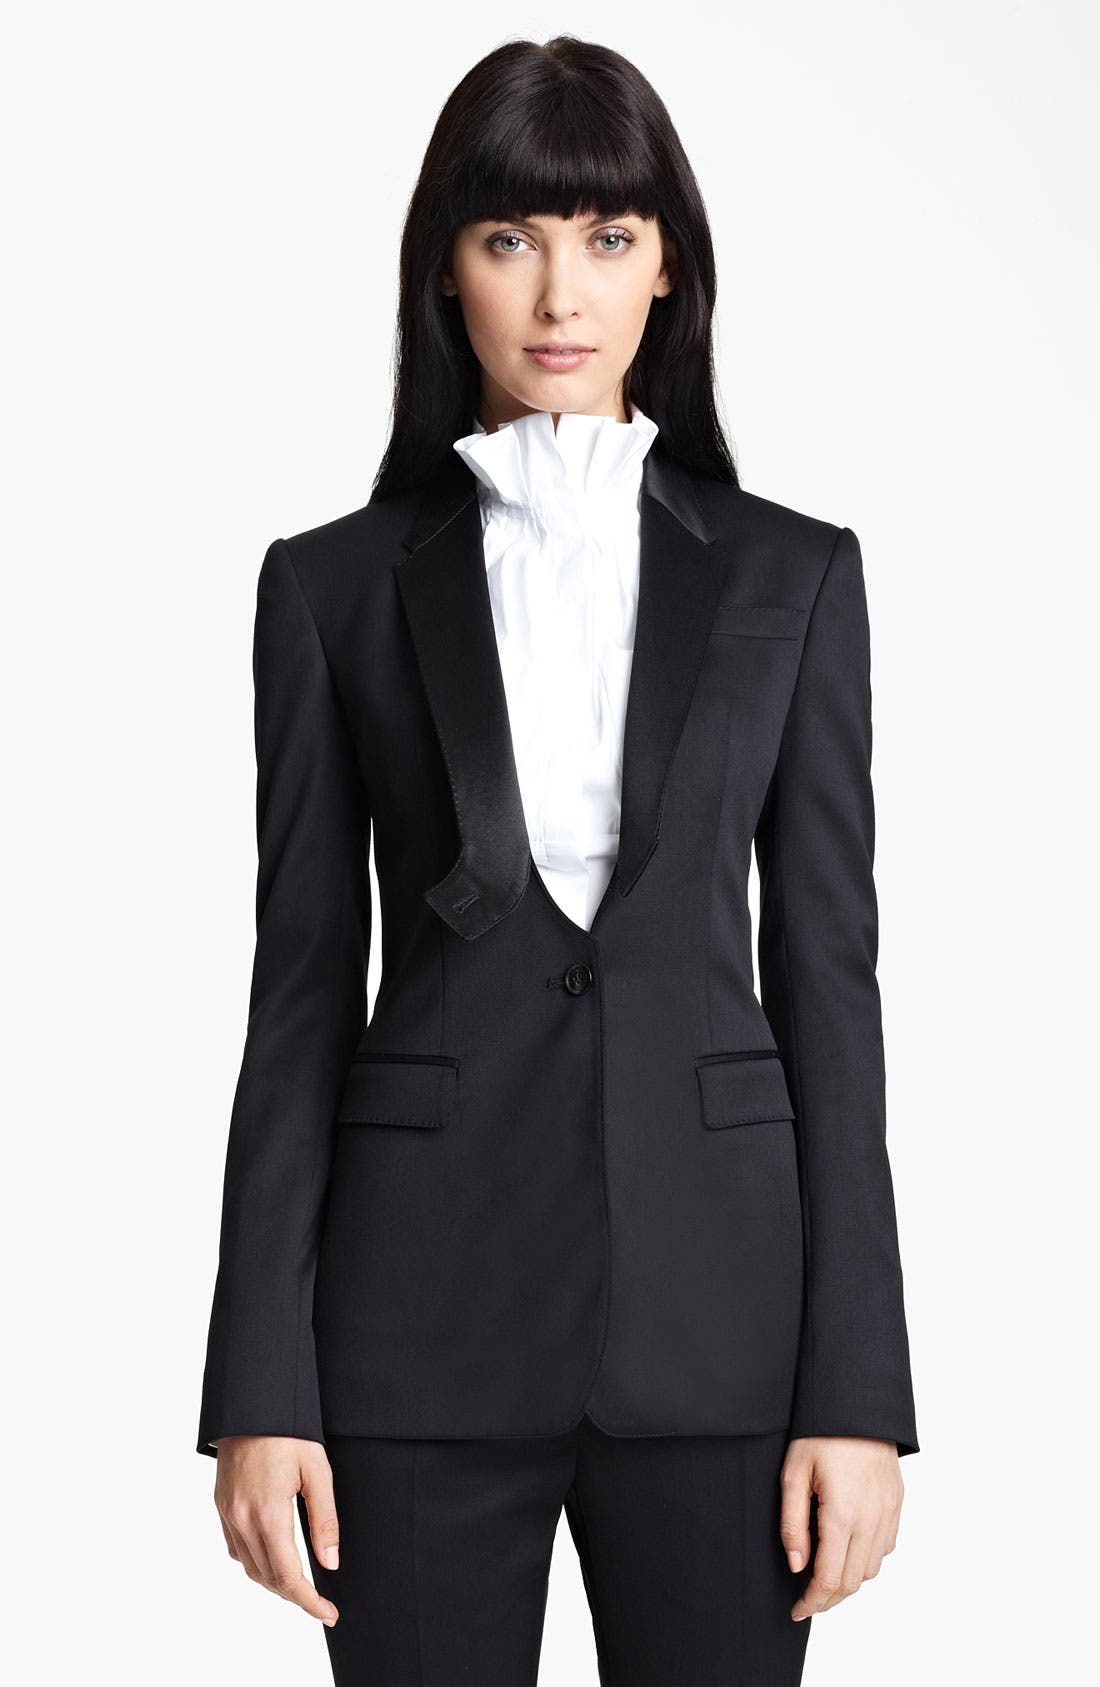 Alternate Image 1 Selected - Burberry Prorsum Stretch Wool Tuxedo Jacket